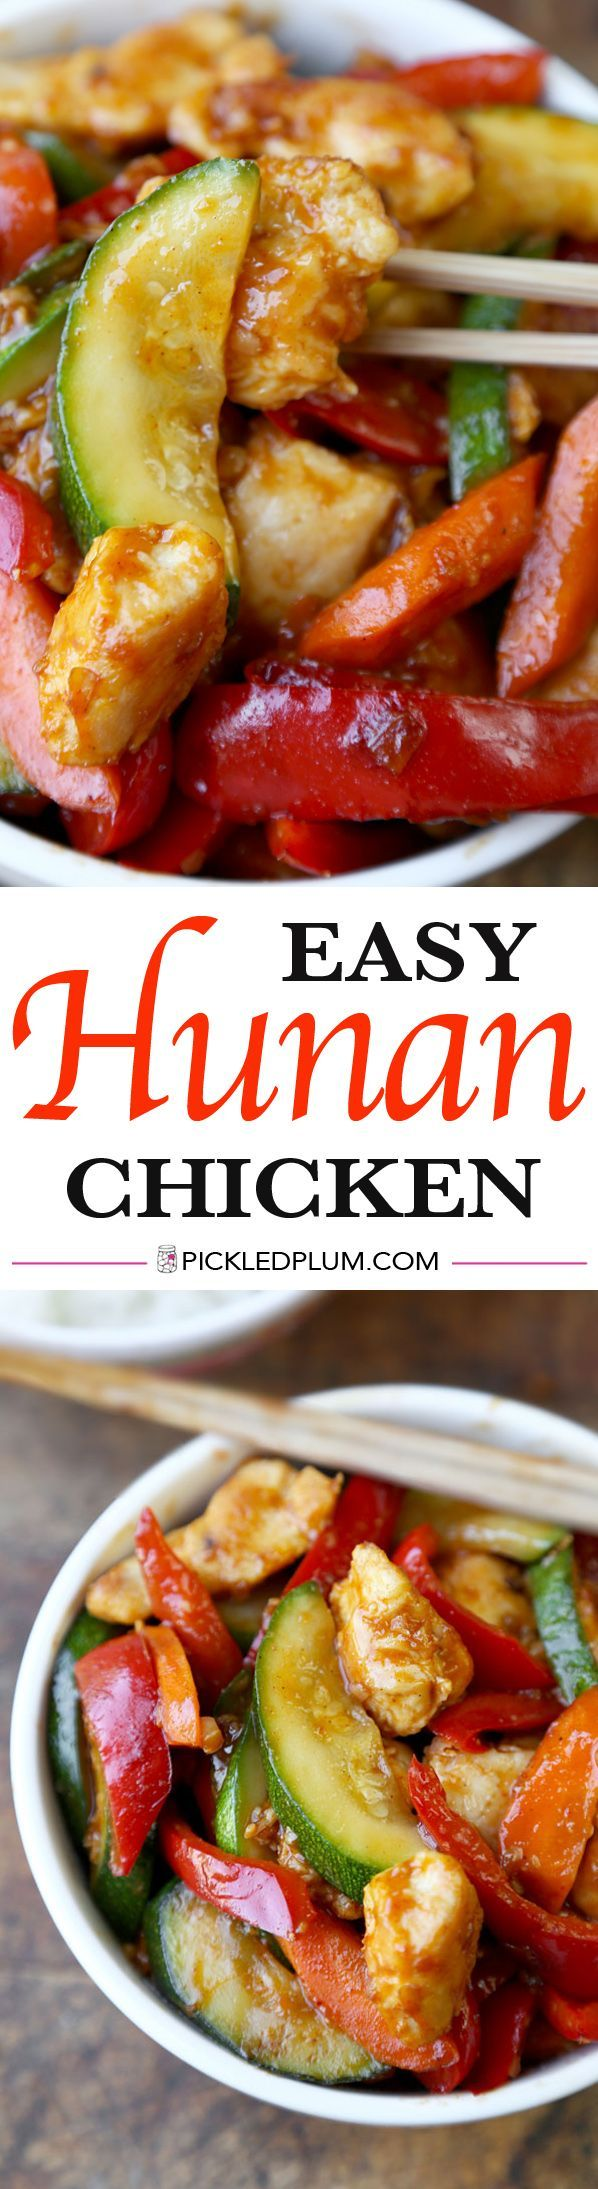 Hunan Chicken Recipe - Easy chicken and veggie stir fry tossed in a sweet and spicy sauce. Easy, Healthy, Spicy, Chinese, Recipe